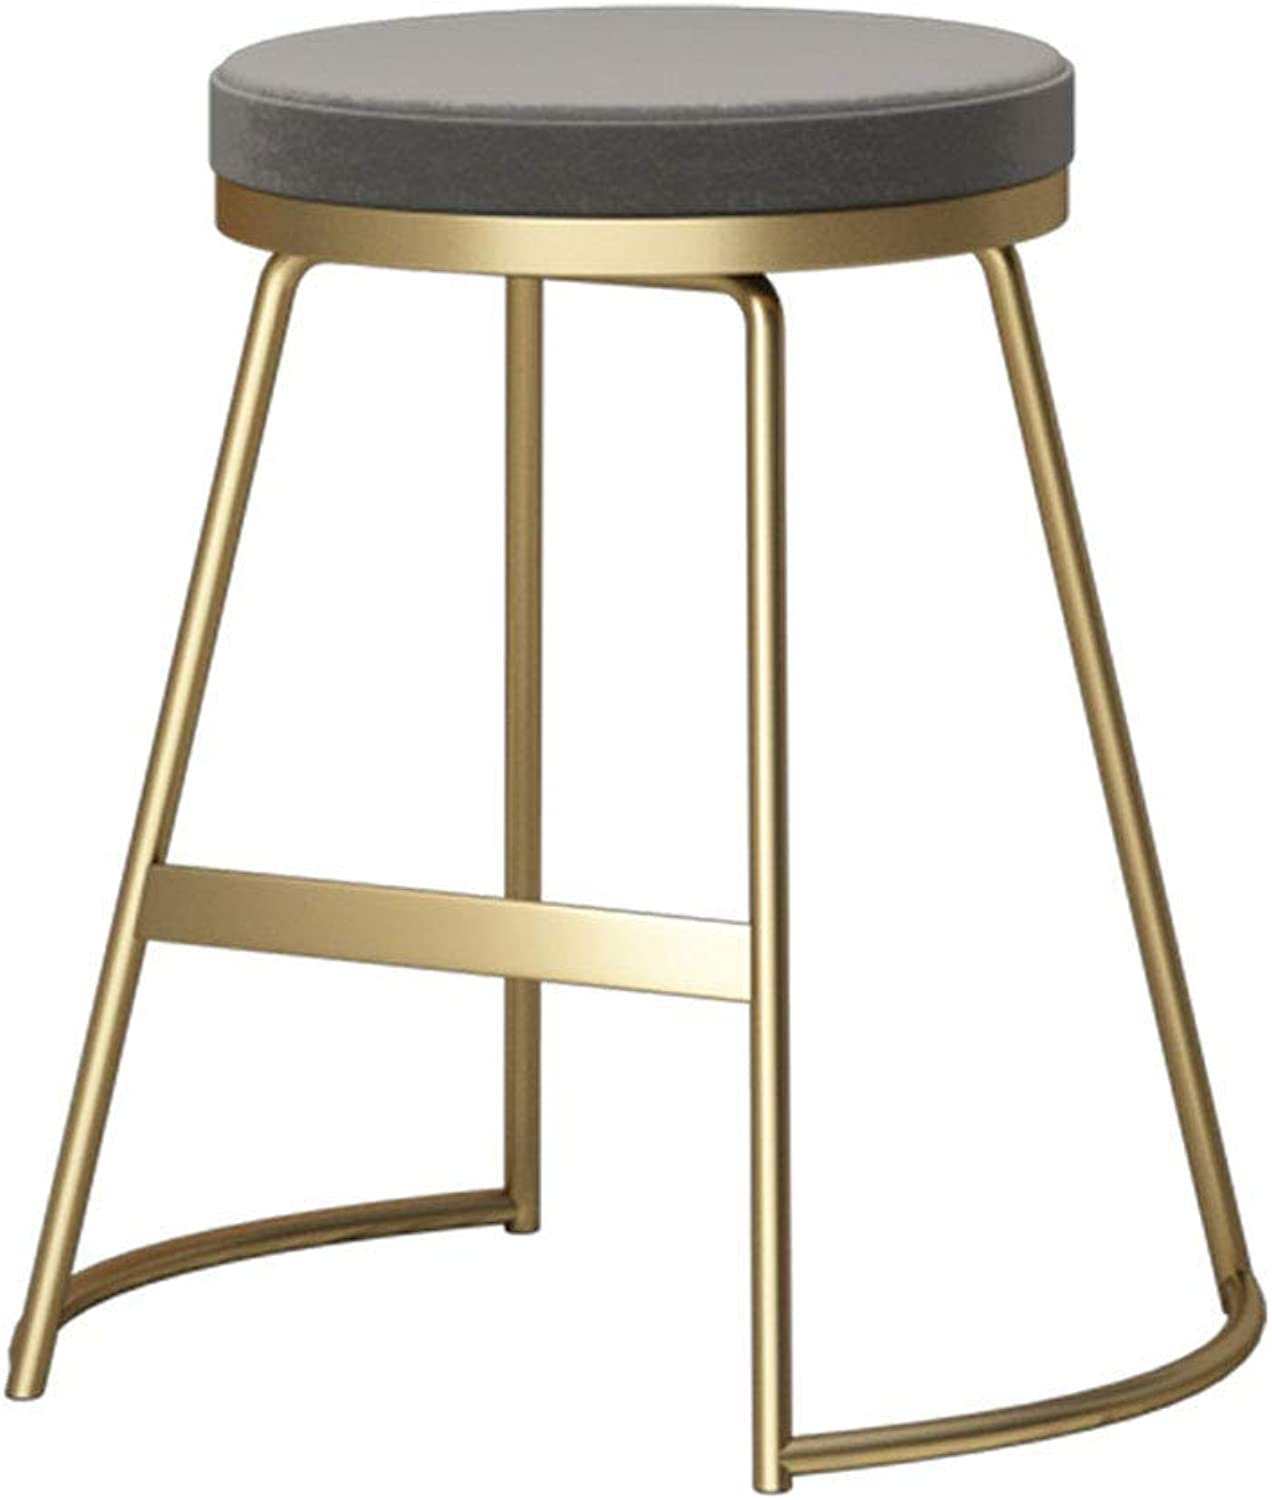 Nordic Iron Barstool,Simple Bar Stool Modern Romantic Makeup Dressing Tall Stool with PU Seat for Bar Kitchen Pub Breakfast Dining,gold (45cm)